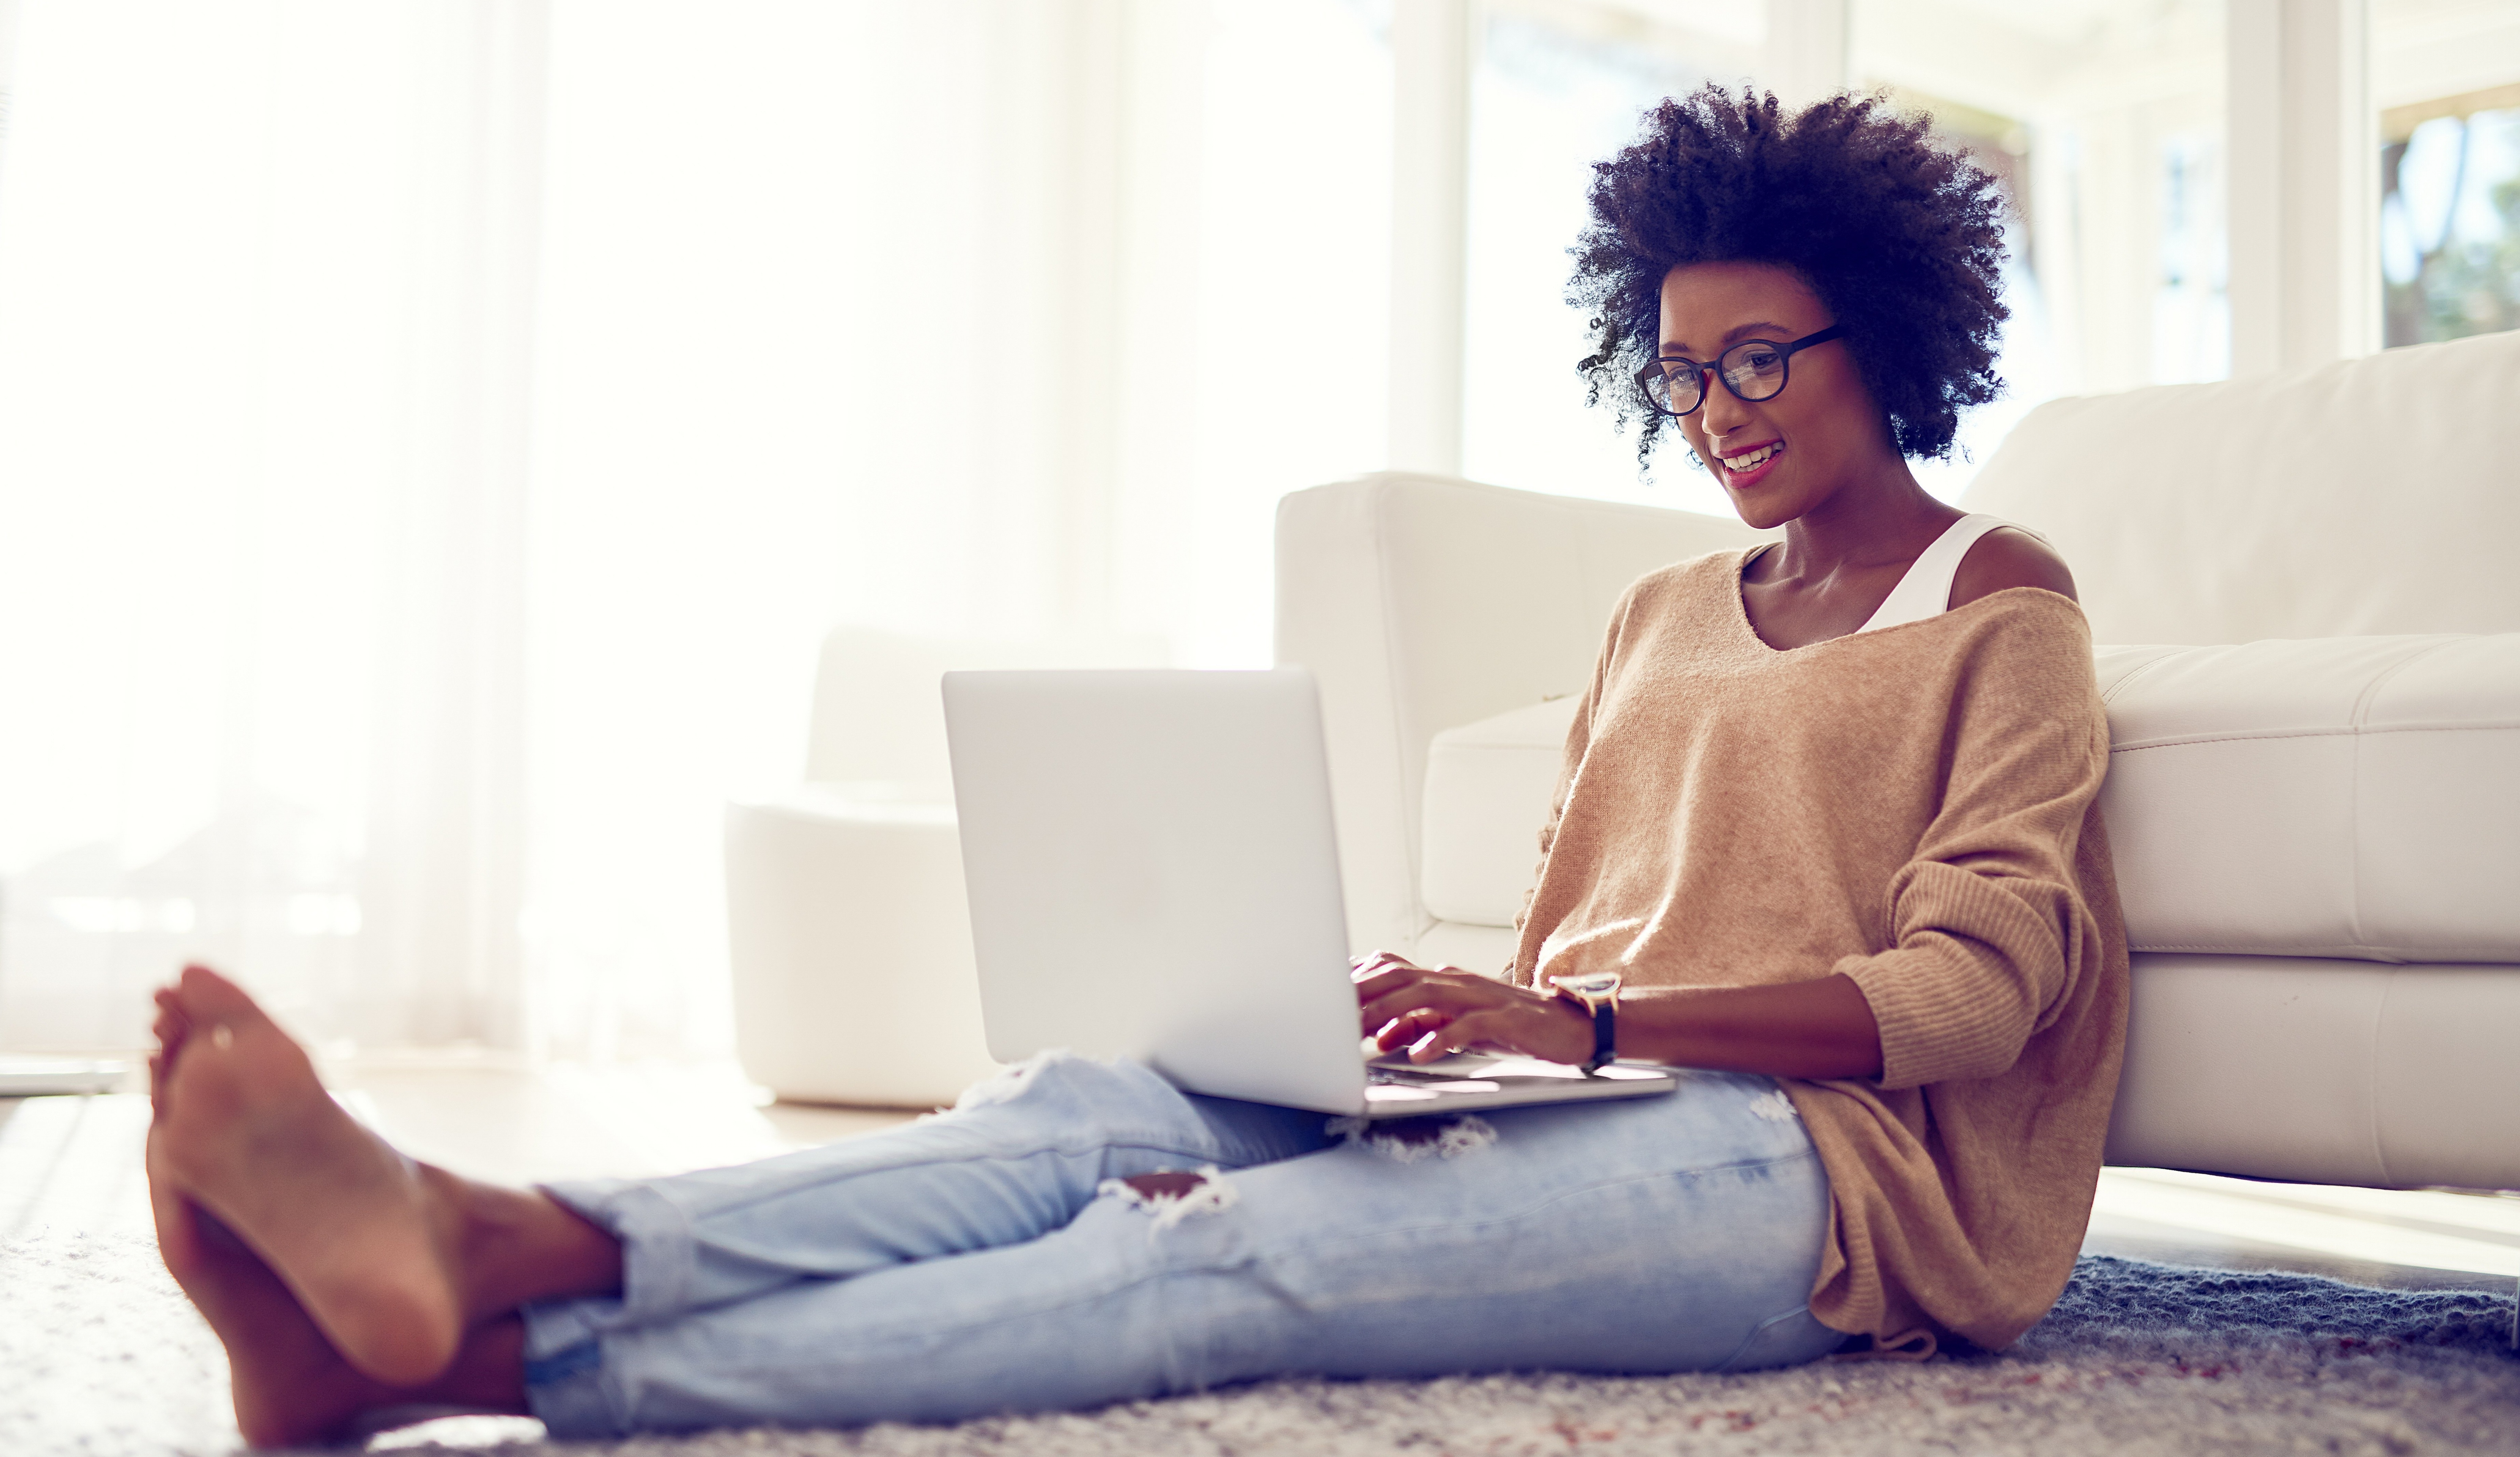 woman_sitting_on_the_floor_on_a_laptop